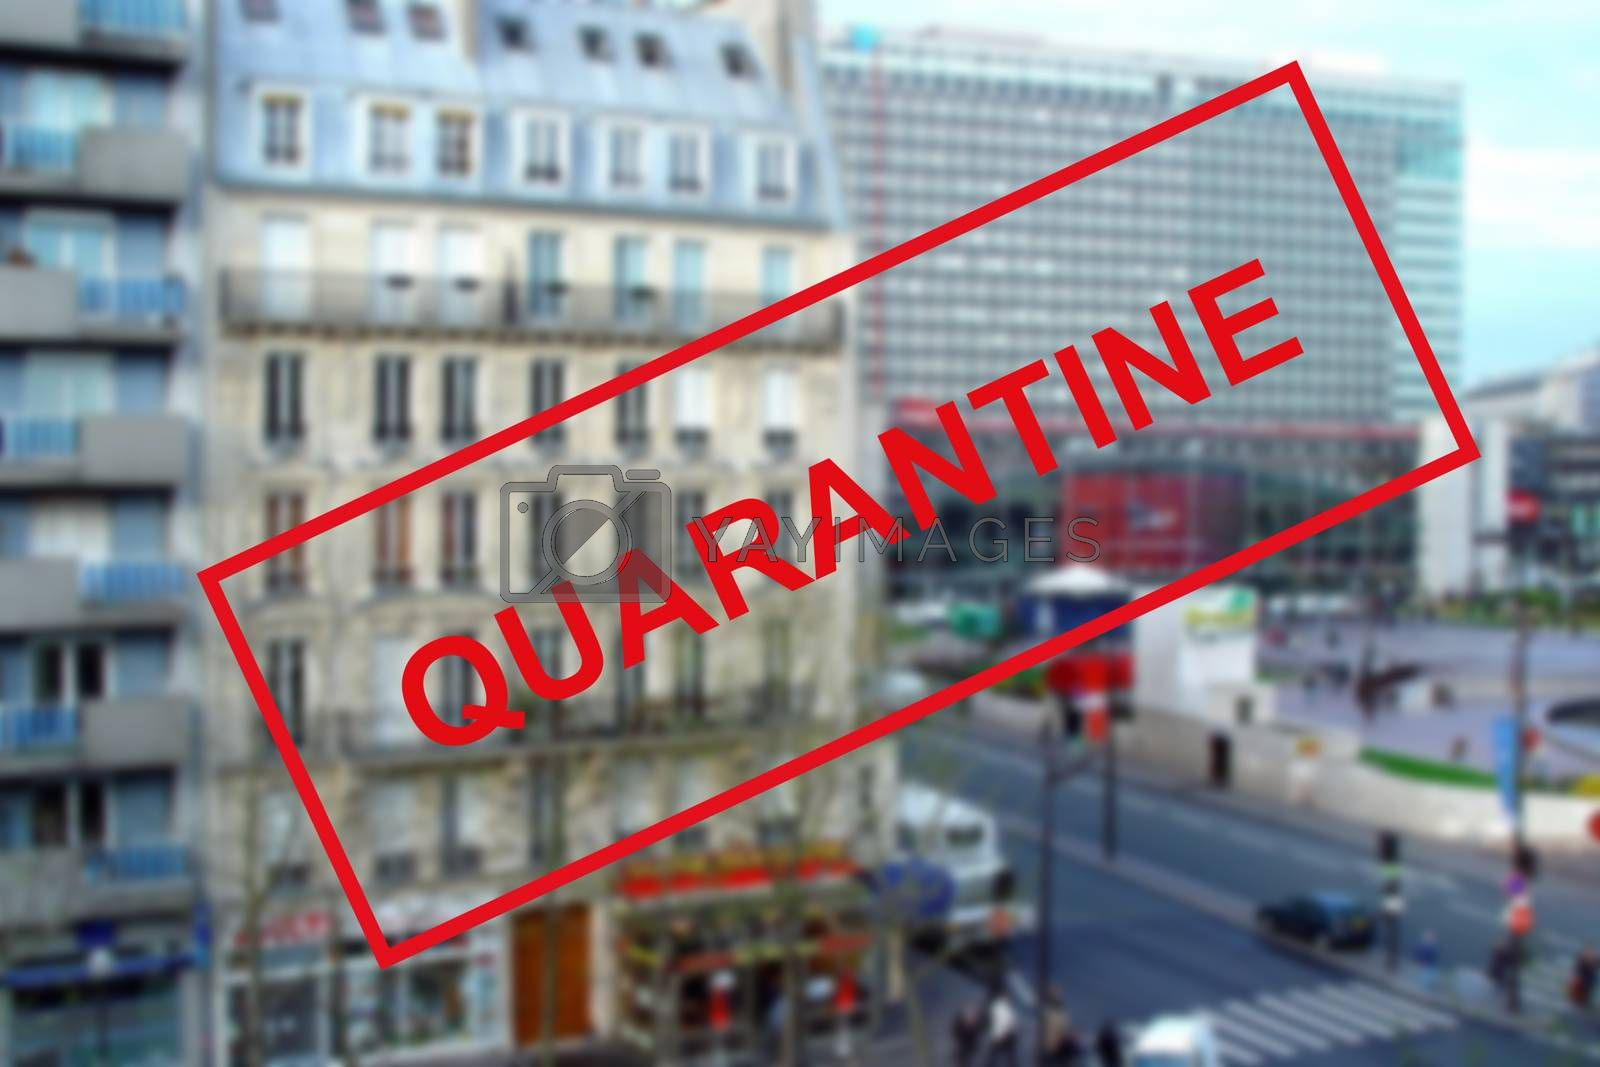 COVID-19 coronavirus in France, text quarantine on a blurry background of a train station building in Paris. The concept of covid pandemics and travel in Europe. Travel is banned due to the coronavirus pandemic around the world